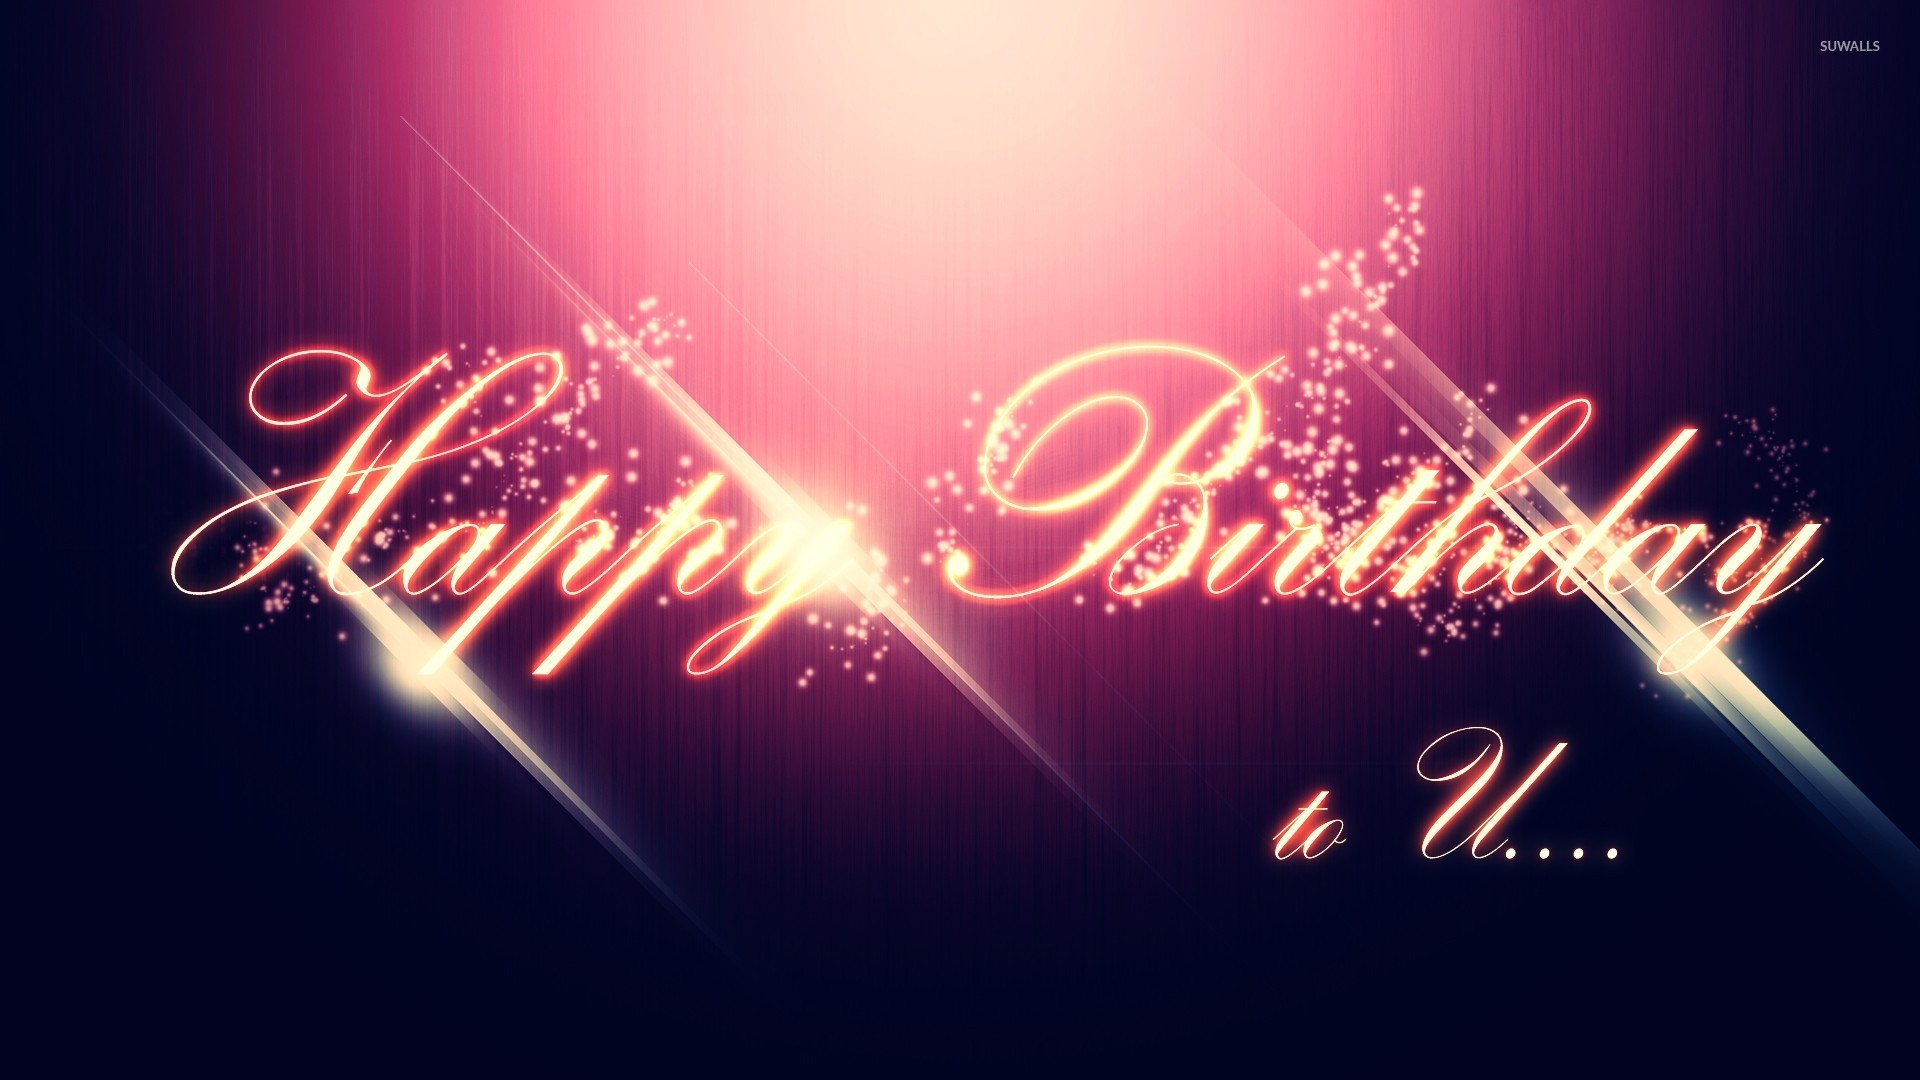 Find out Birthday Cake wallpaper on